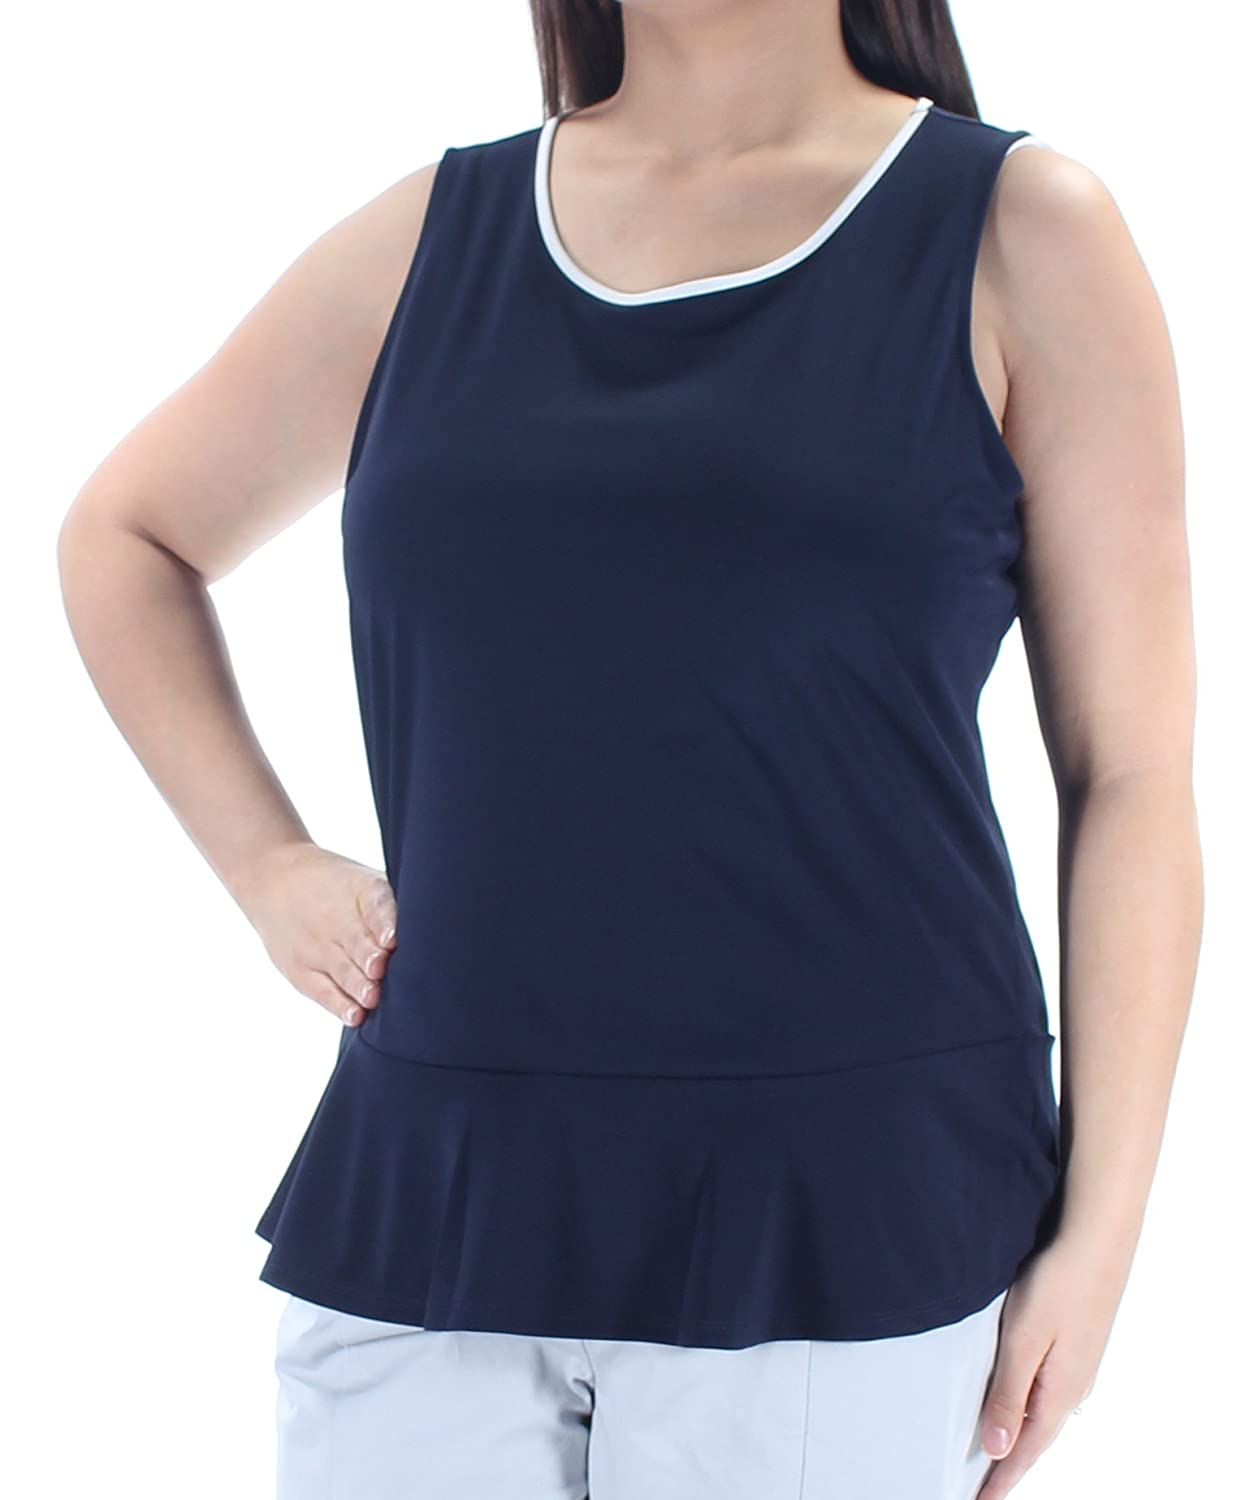 f0edf35a2132 Tommy Hilfiger  49 Womens New 1361 Navy White Color Block Ruffled Top XL  B+B at Amazon Women s Clothing store